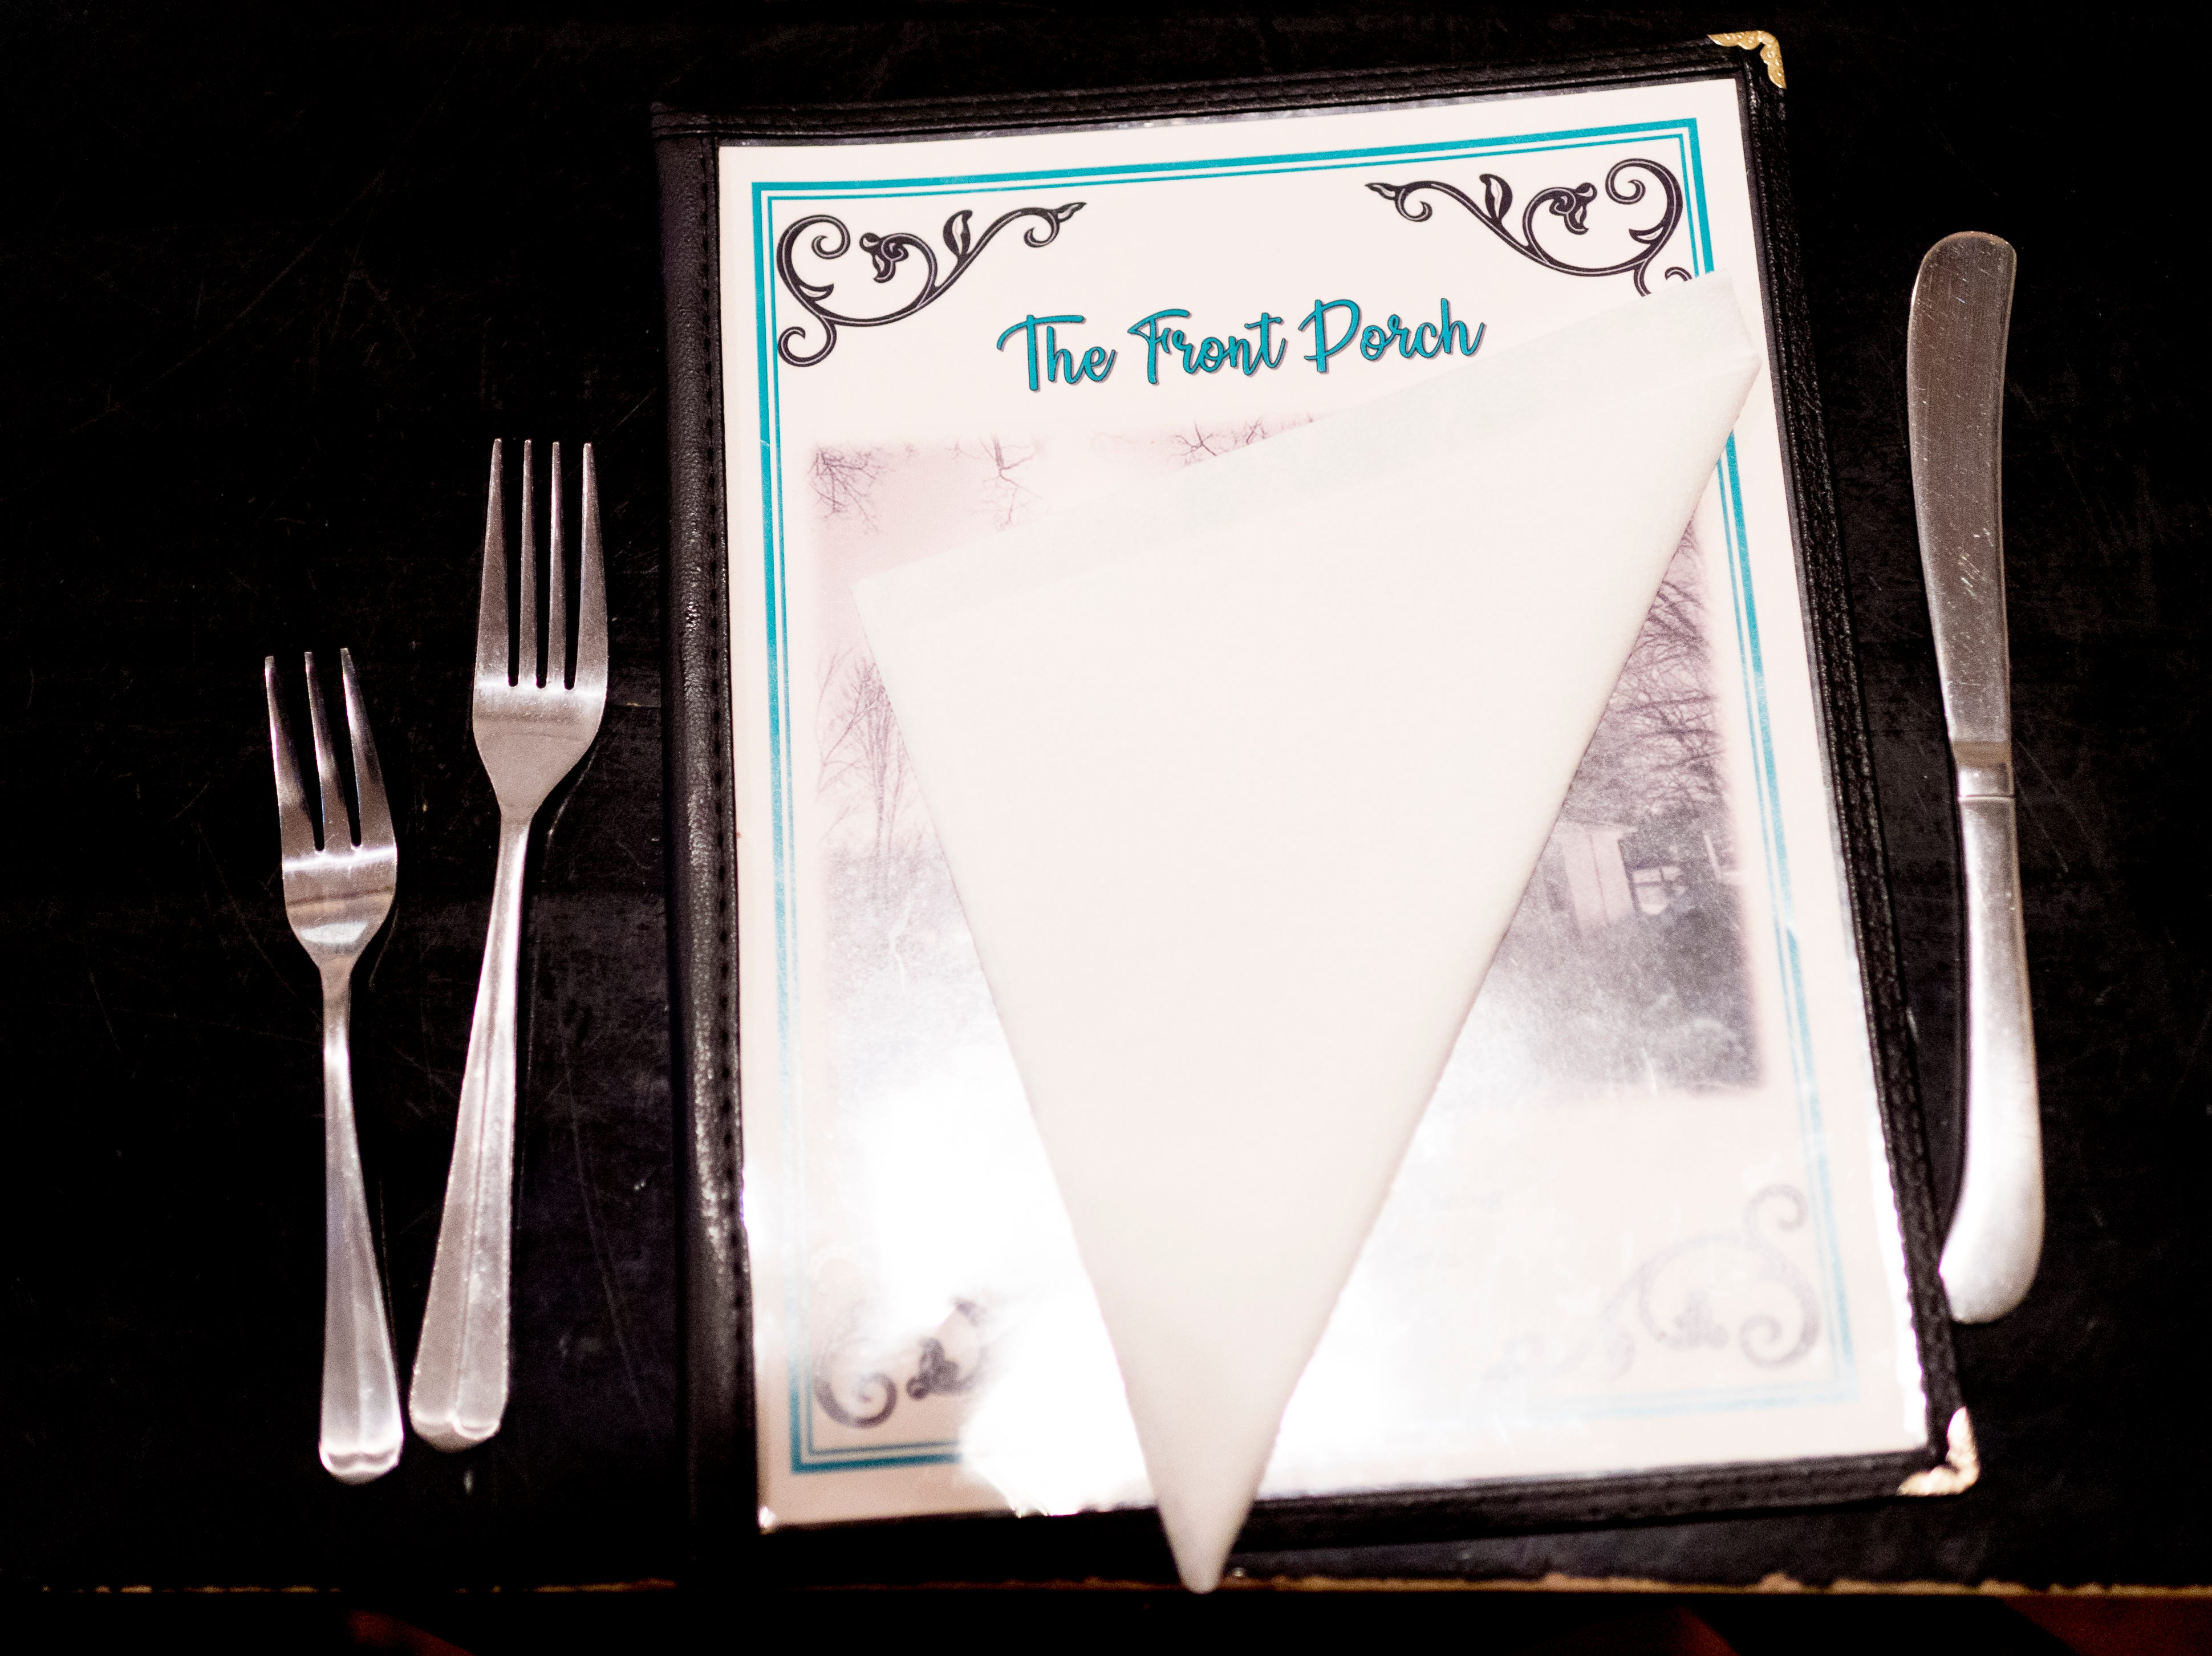 The menu sits on a table at The Front Porch Restaurant in Powell, Tennessee on Saturday, December 29, 2018. For five years, owner Bart Elkins has worked to revive that experience of the front porch being used as the focus for family and friends.